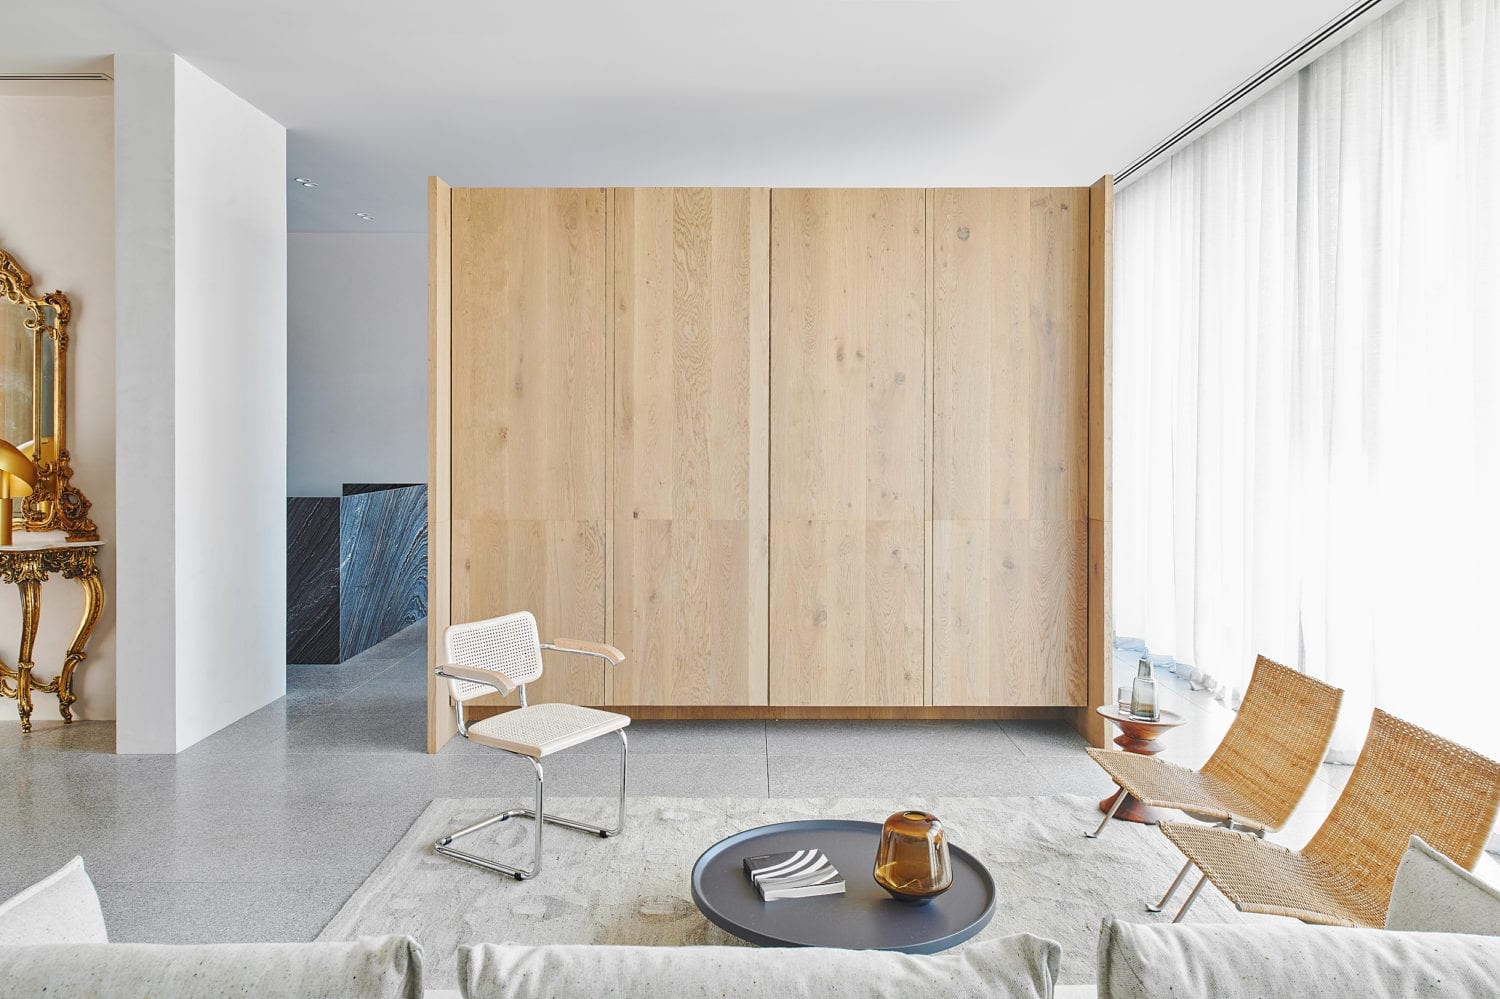 Sld Residence In Toorak Melbourne By Davidov Partners Architects Yellowtrace 02